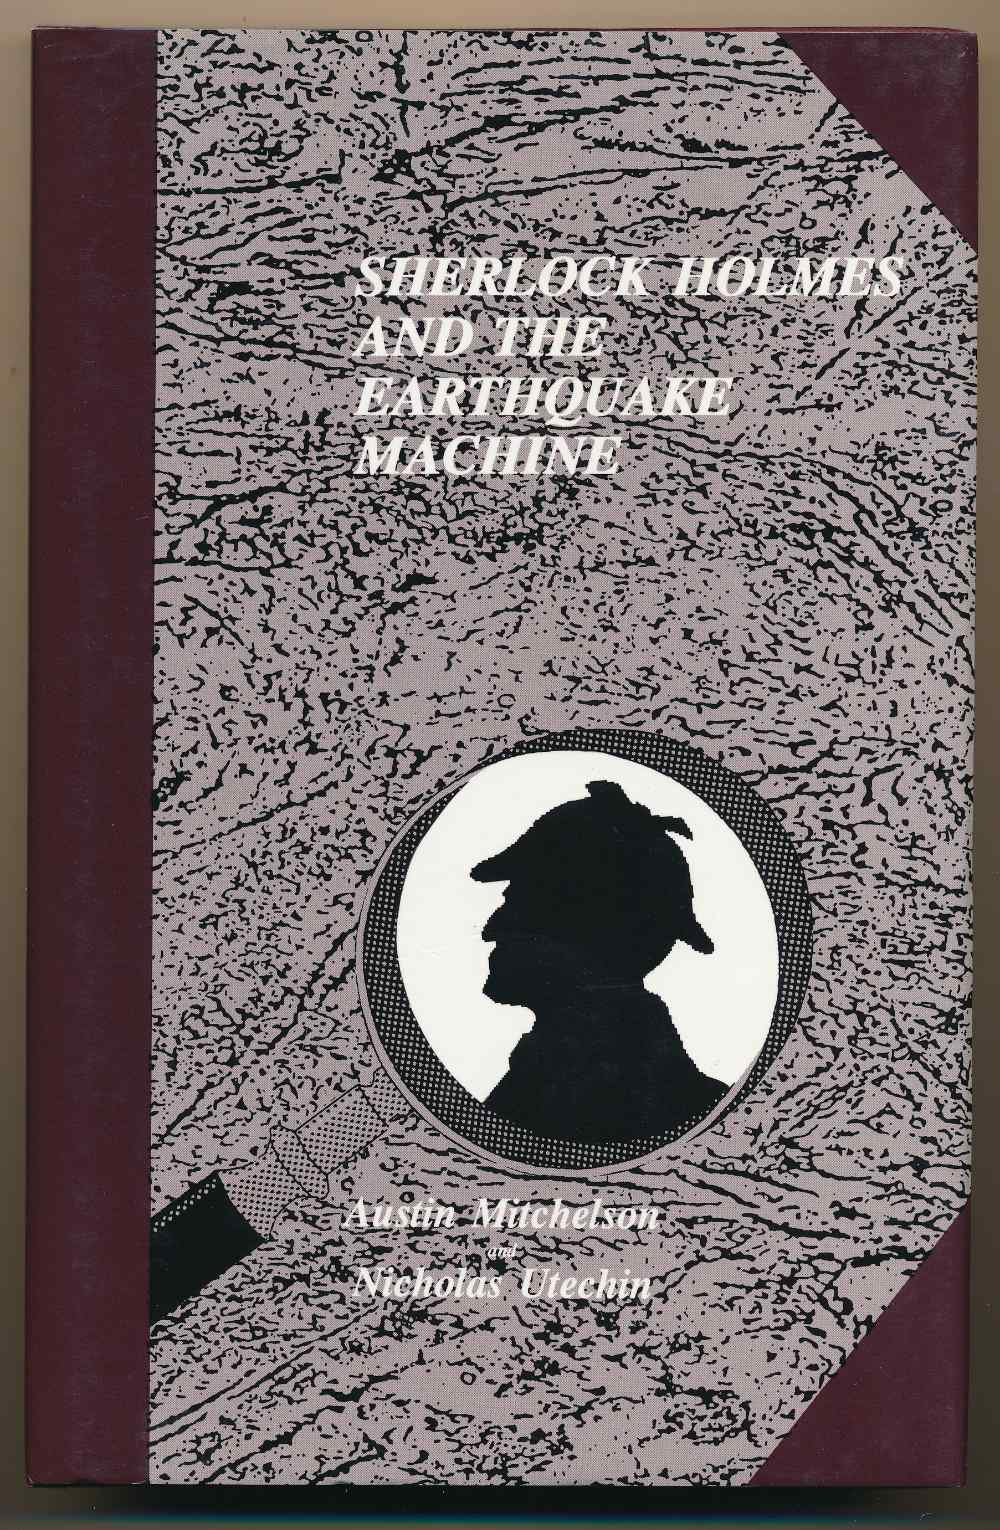 Sherlock Holmes and the earthquake machine